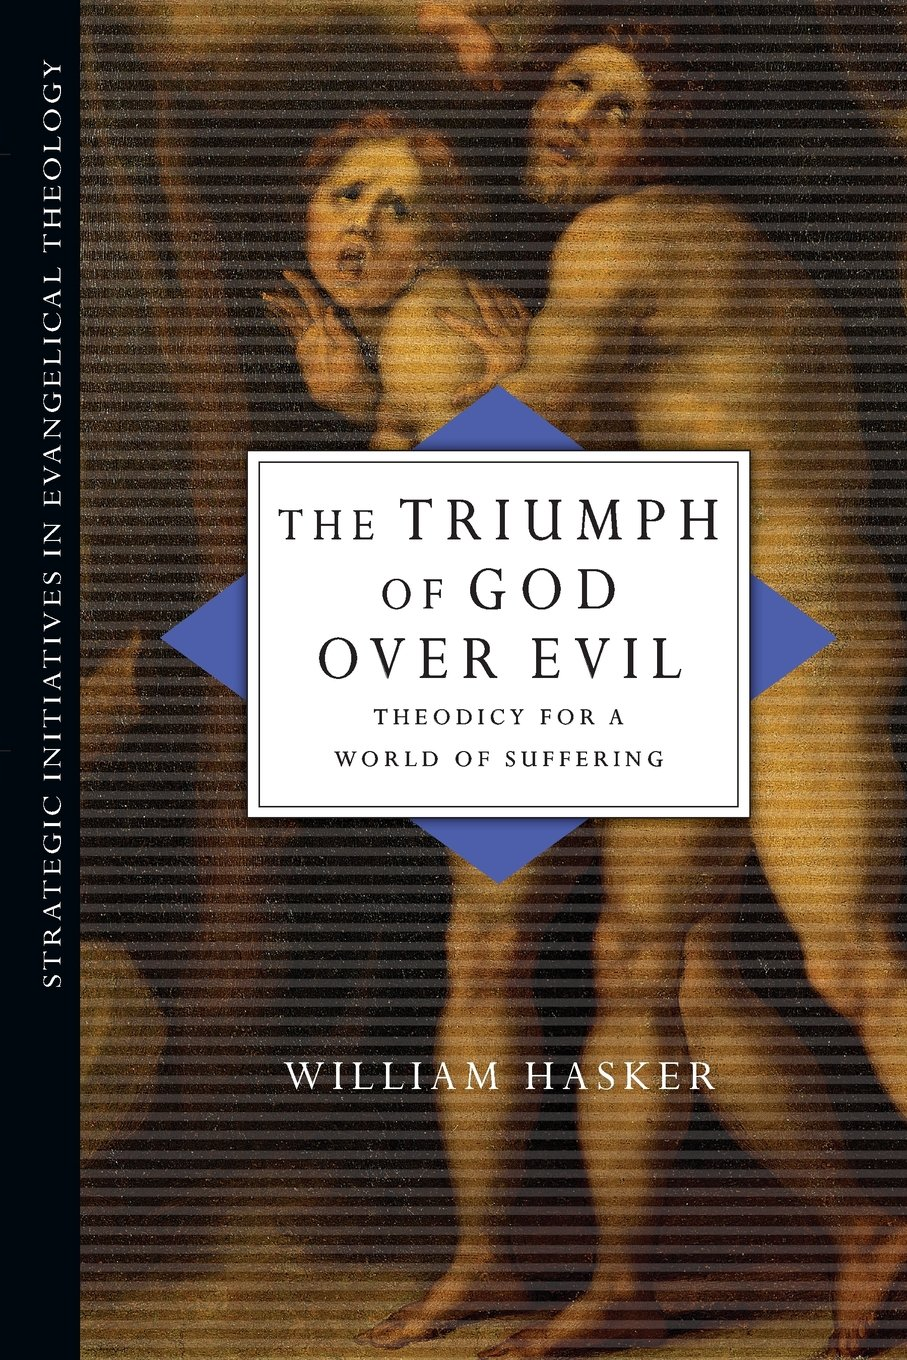 The triumph of god over evil theodicy for a world of suffering the triumph of god over evil theodicy for a world of suffering strategic initiatives in evangelical theology william hasker 9780830828043 amazon fandeluxe Document